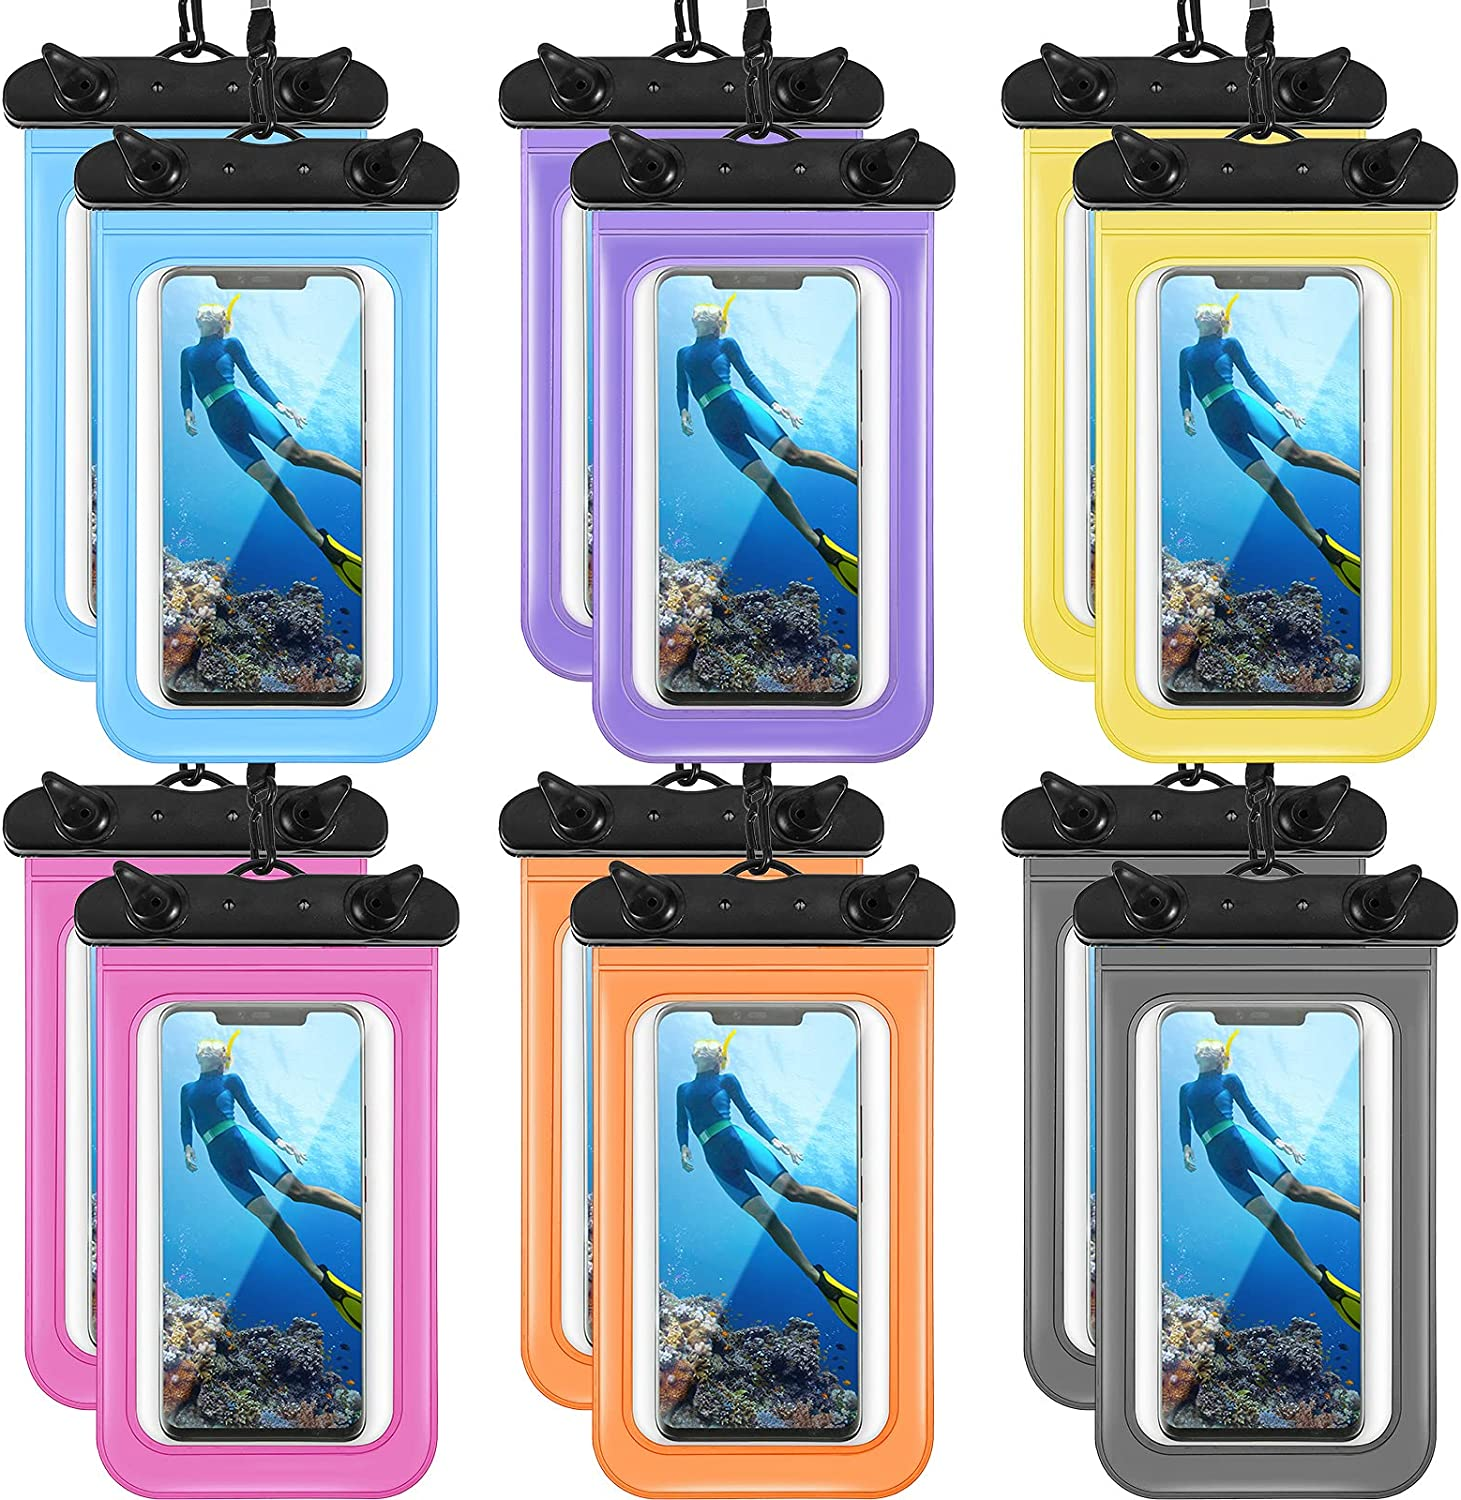 12 Pieces Waterproof Phone Pouch Transparent Waterproof Mobile Phone Case with Lanyard Universal PVC Phone Bag Dry Bag for Outdoor Water Sports Boating Hiking Fishing Swimming (Assorted Color)